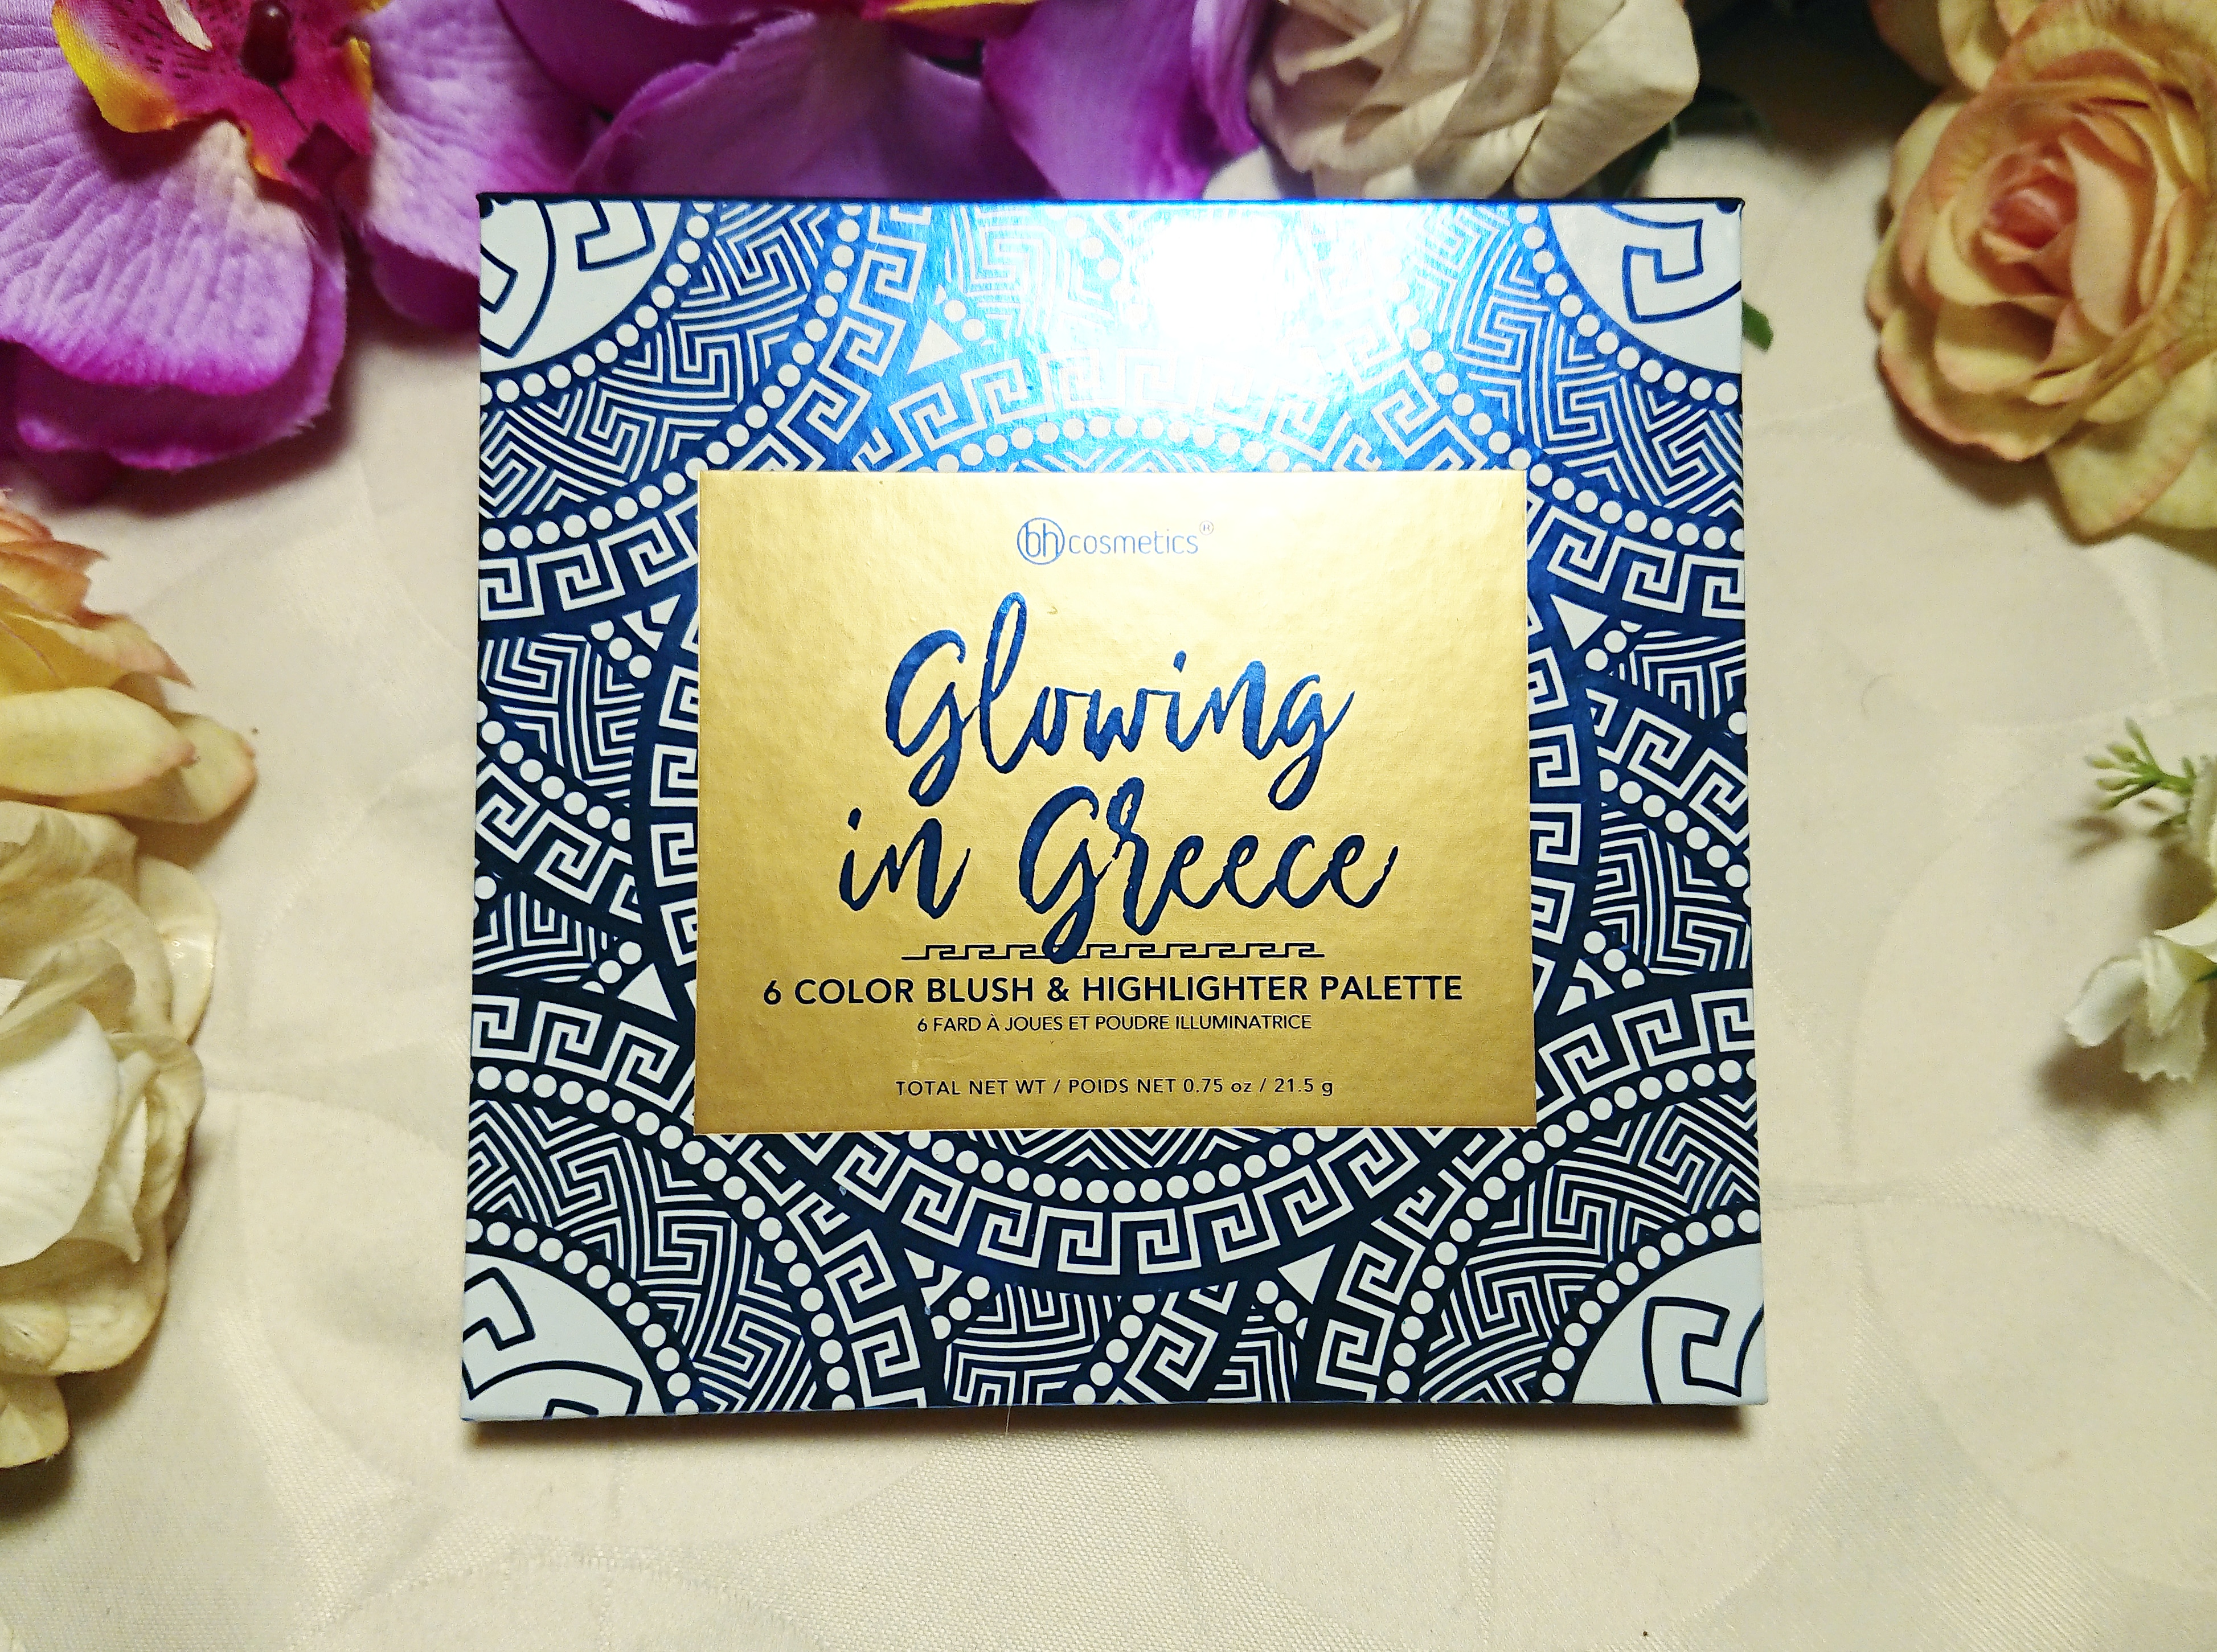 Glowing In Greece - 6 Color Blush & Highlighter Palette by BH Cosmetics #9